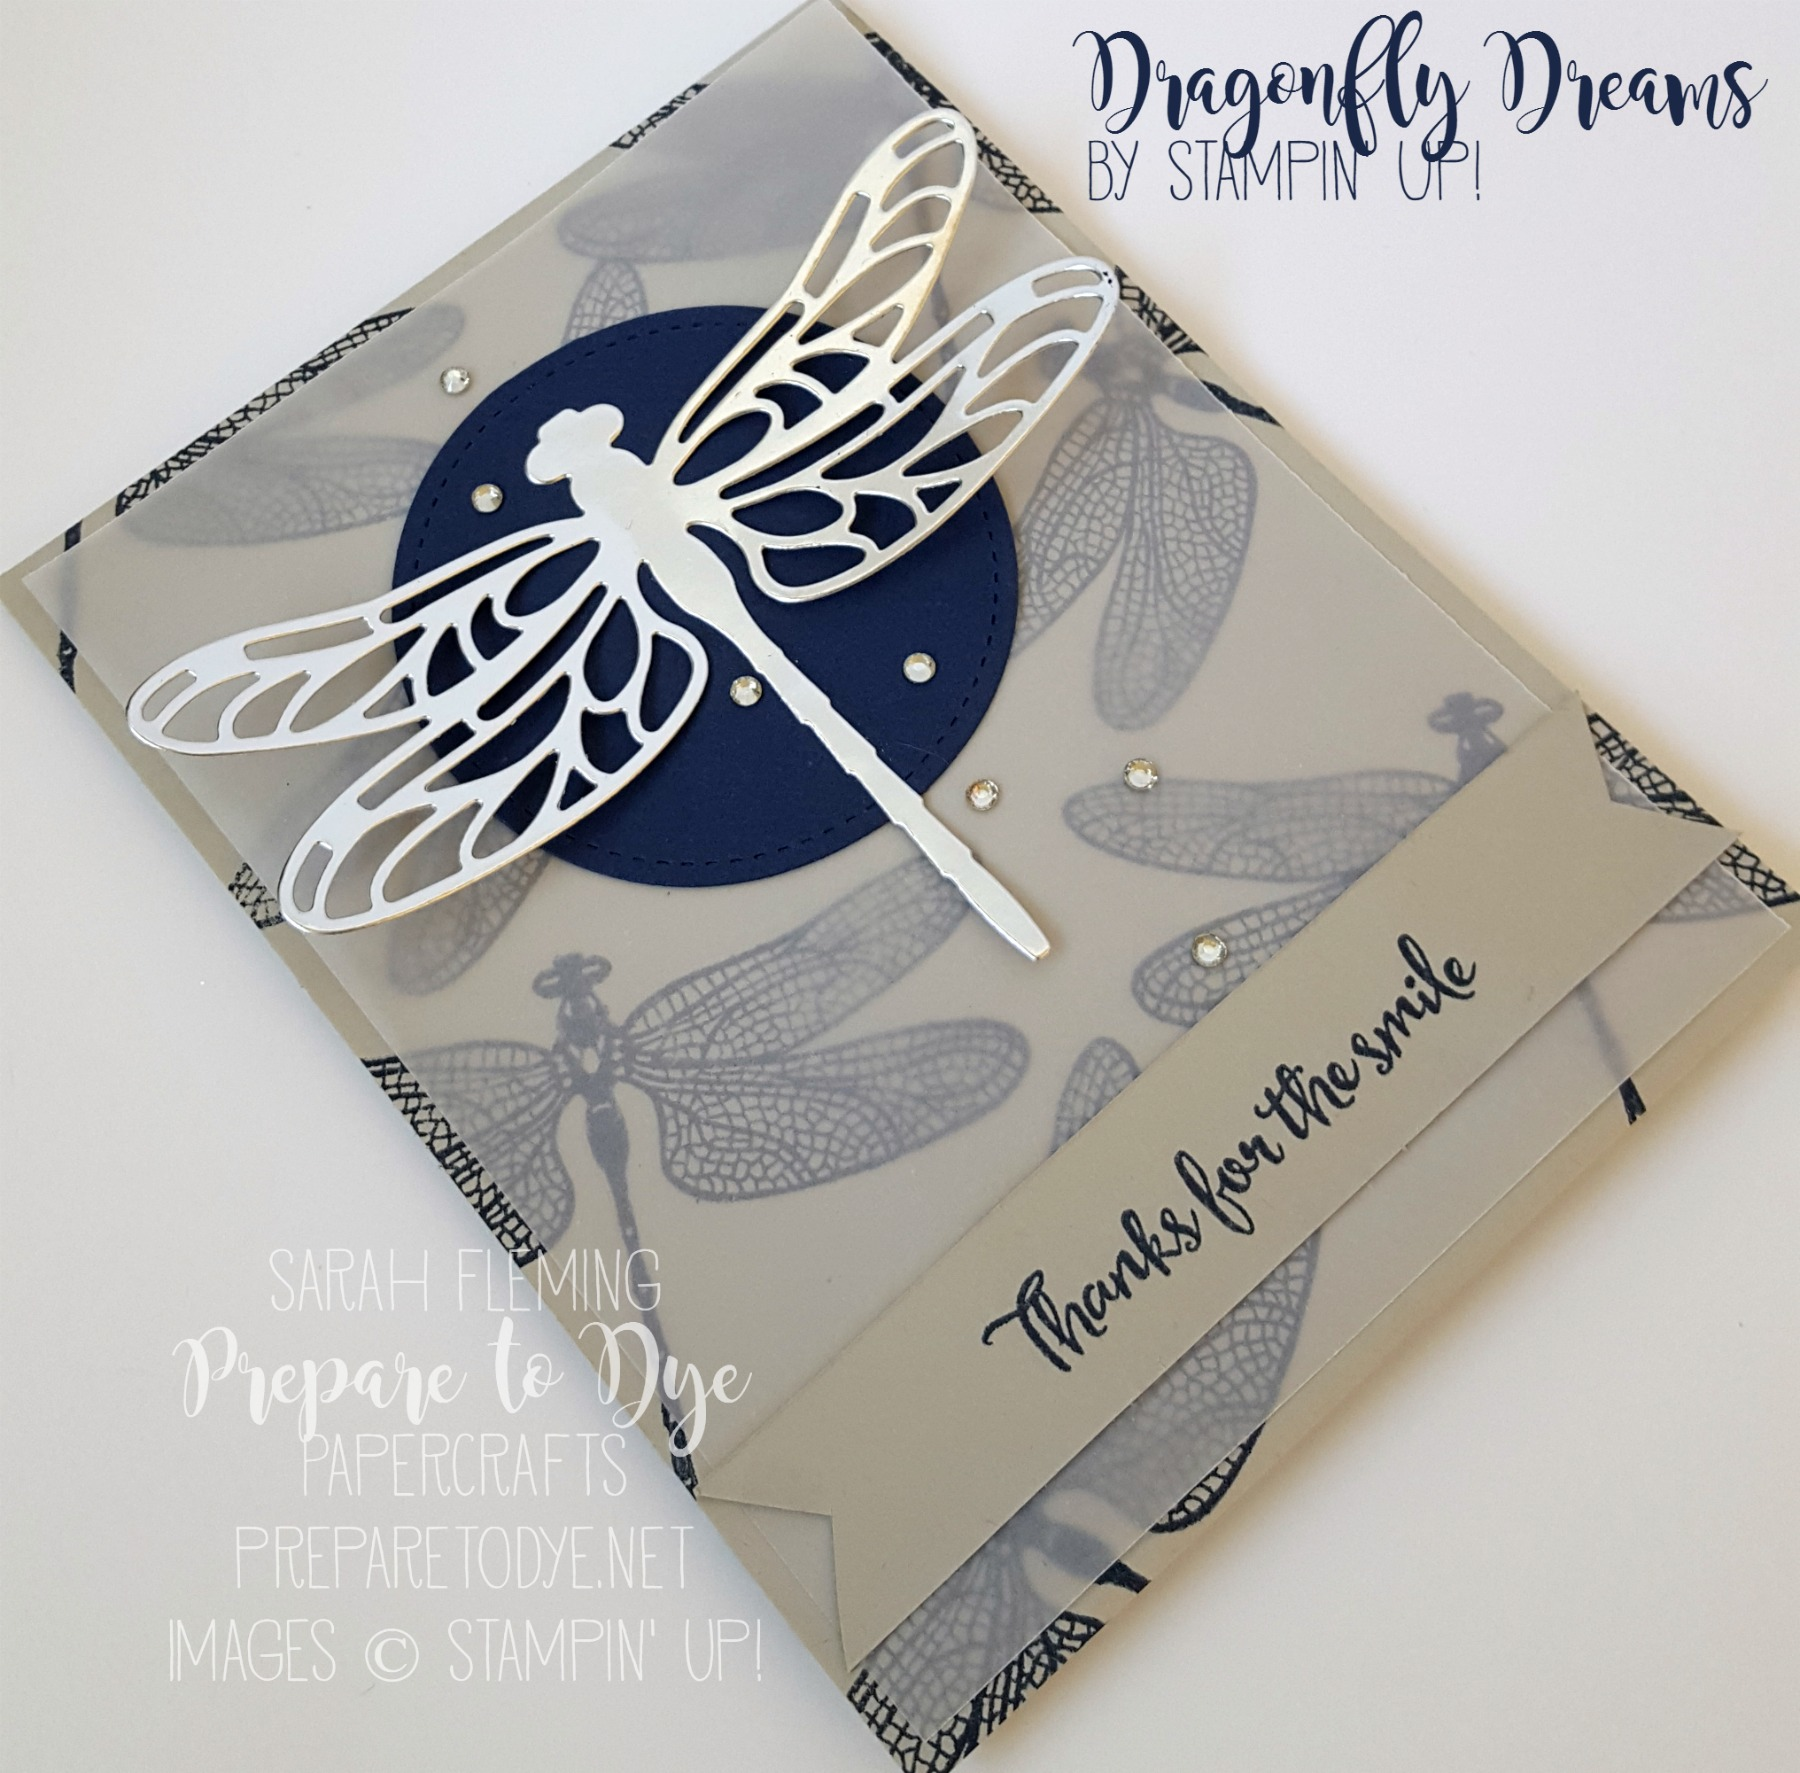 Stampin' Up! handmade masculine thank you card using Dragonfly Dreams stamps and Detailed Dragonfly Thinlits - Sarah Fleming - Prepare to Dye Papercrafts